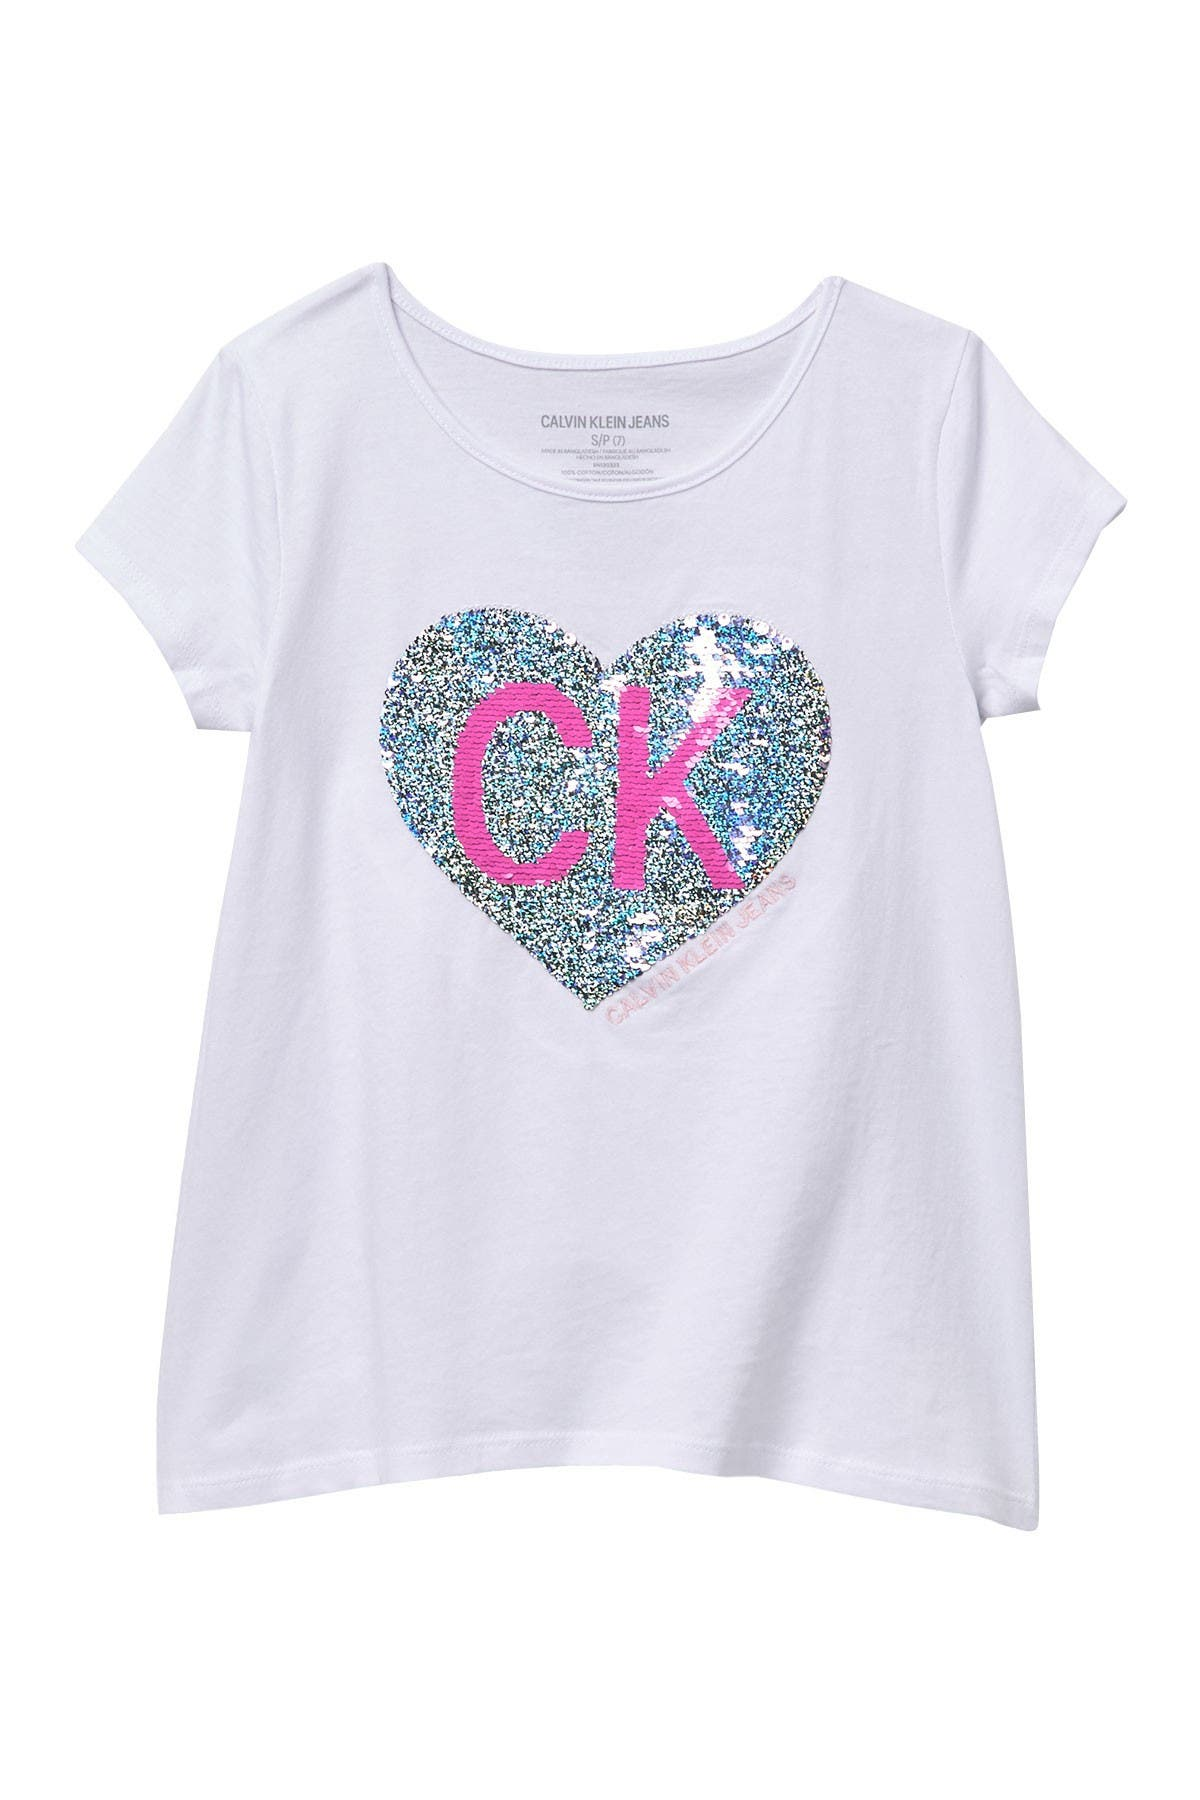 Image of Calvin Klein Glitter Heart Logo Top